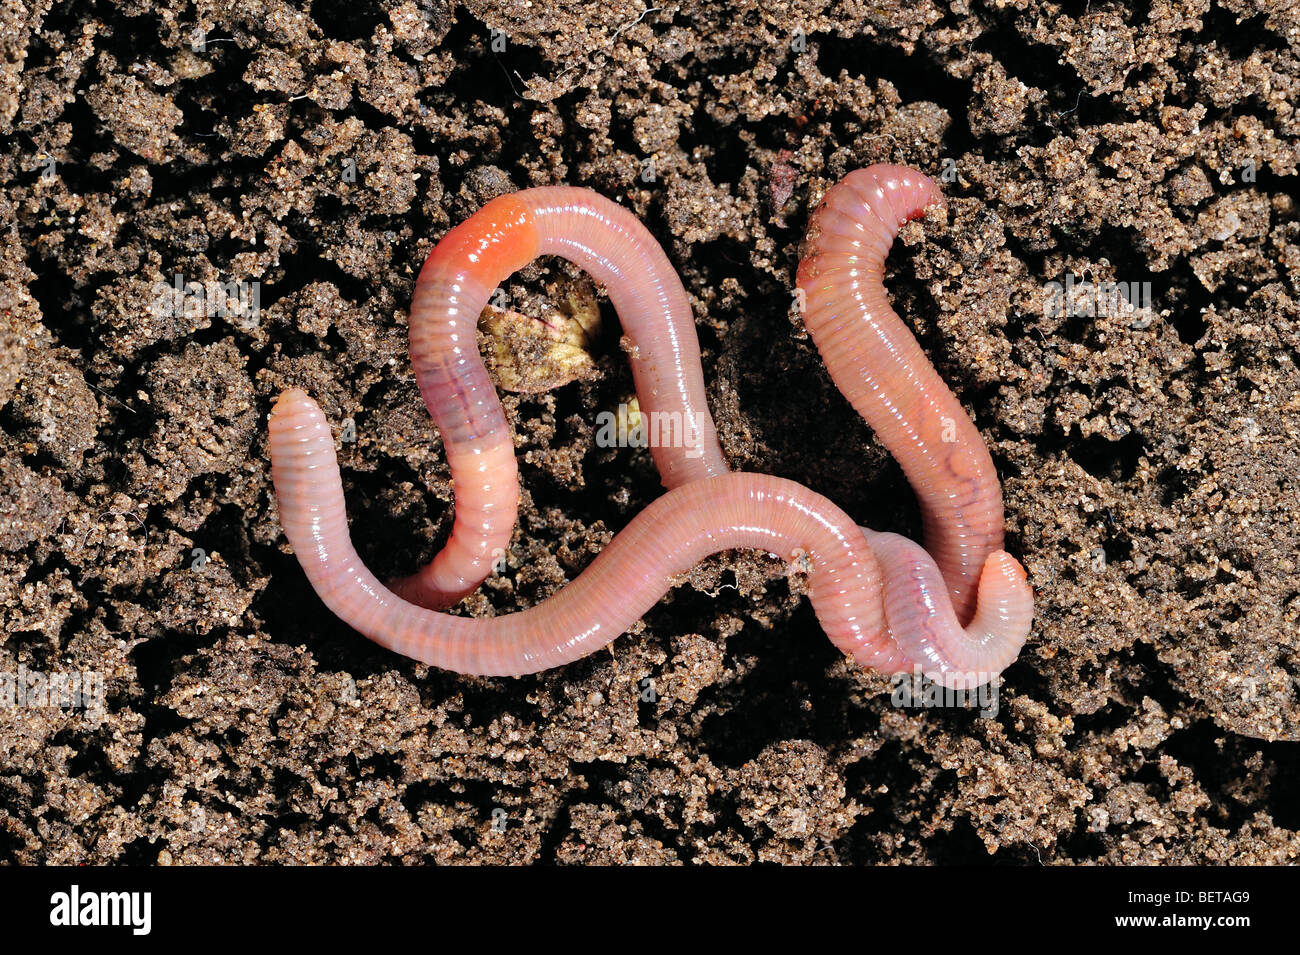 Two common earthworms / lob worms (Lumbricus terrestris) crawling on the ground in garden - Stock Image